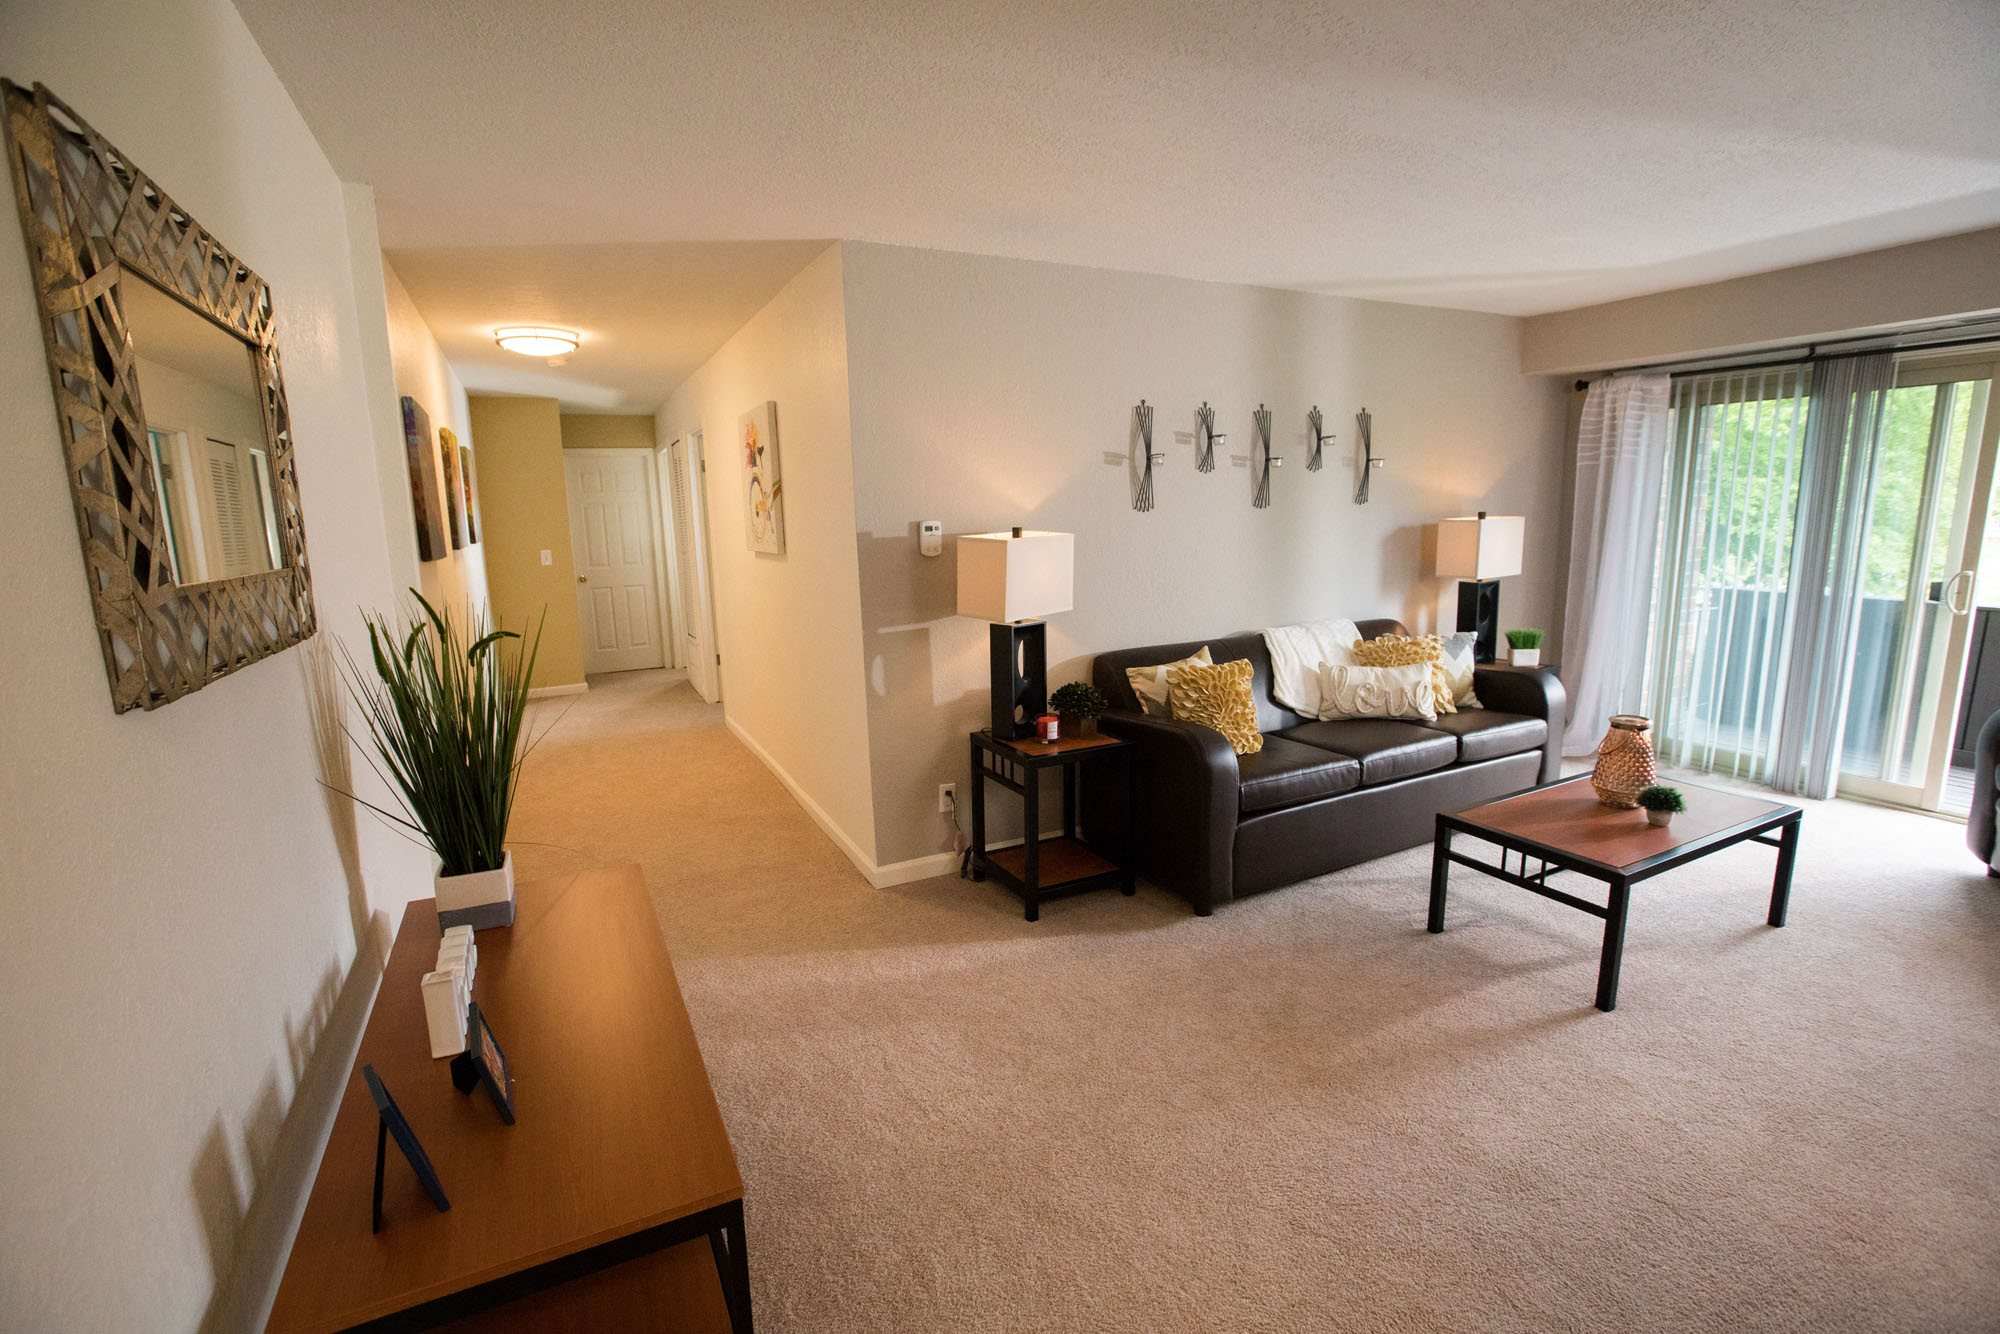 East Lansing Apartments near Michigan State University | Glenwood Apartments